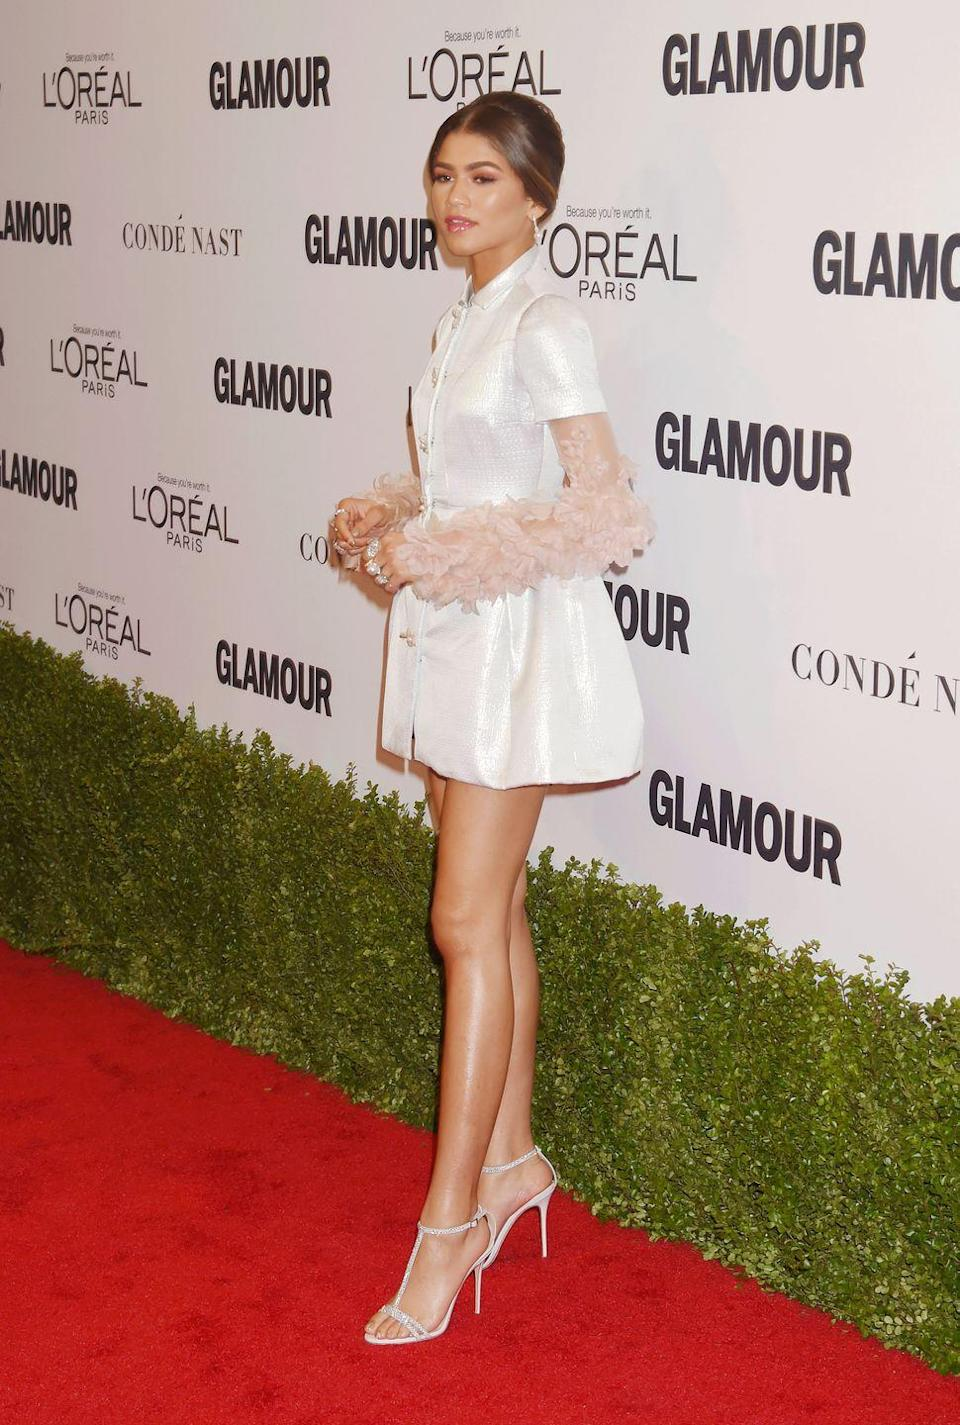 <p>For the 2016 <em>Glamour</em> Women of the Year Awards, she was all about textured statement sleeves with this glam Reem Acra dress.</p>